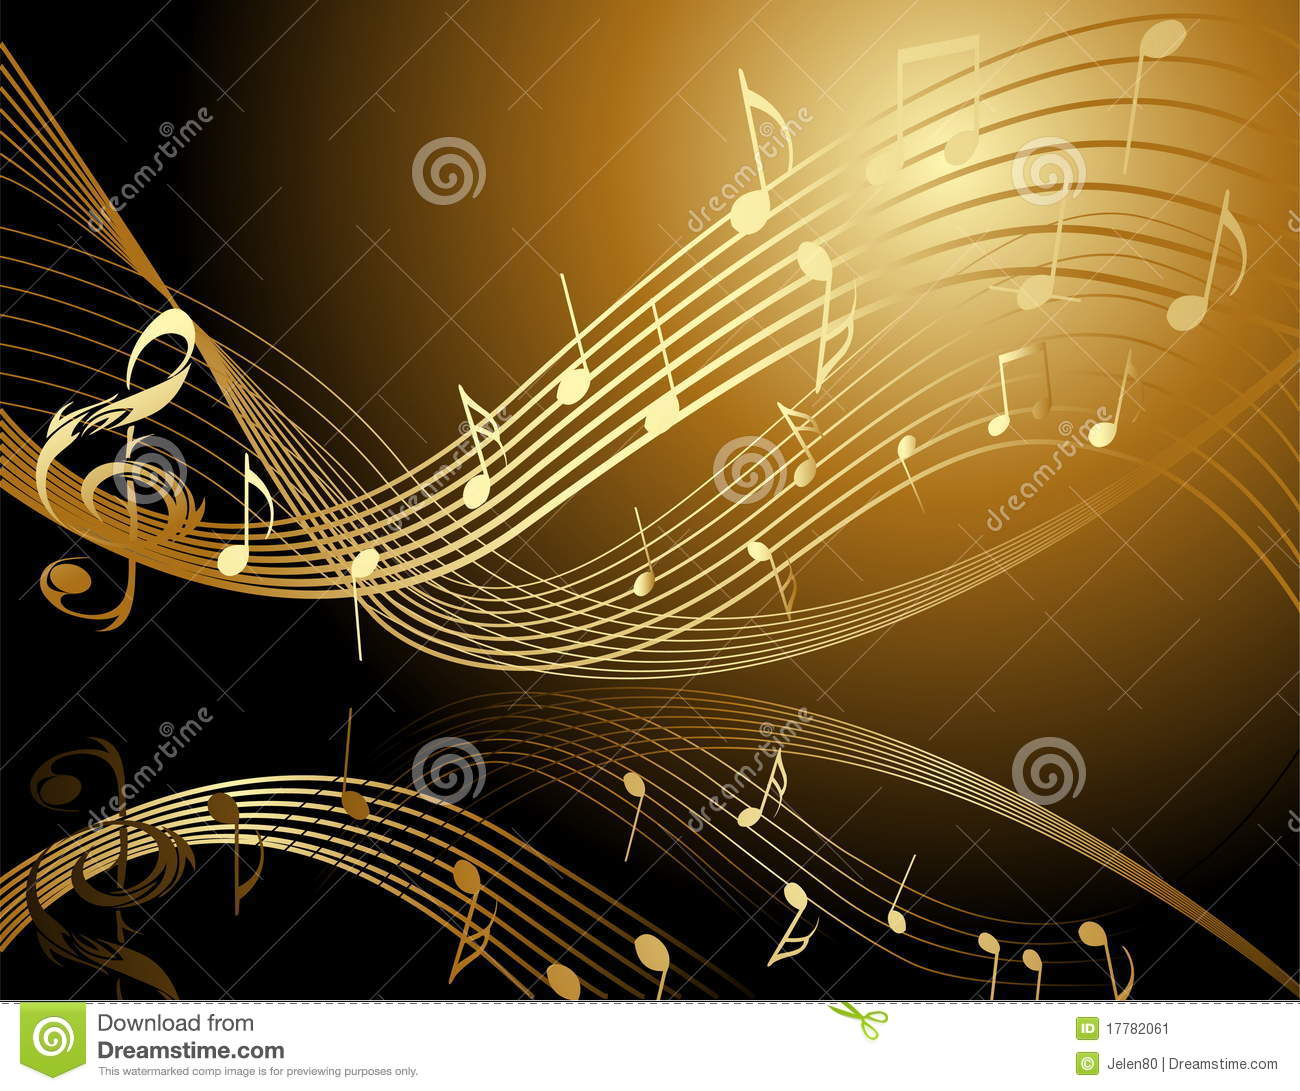 Background With Music Notes Stock Vector - Illustration of line